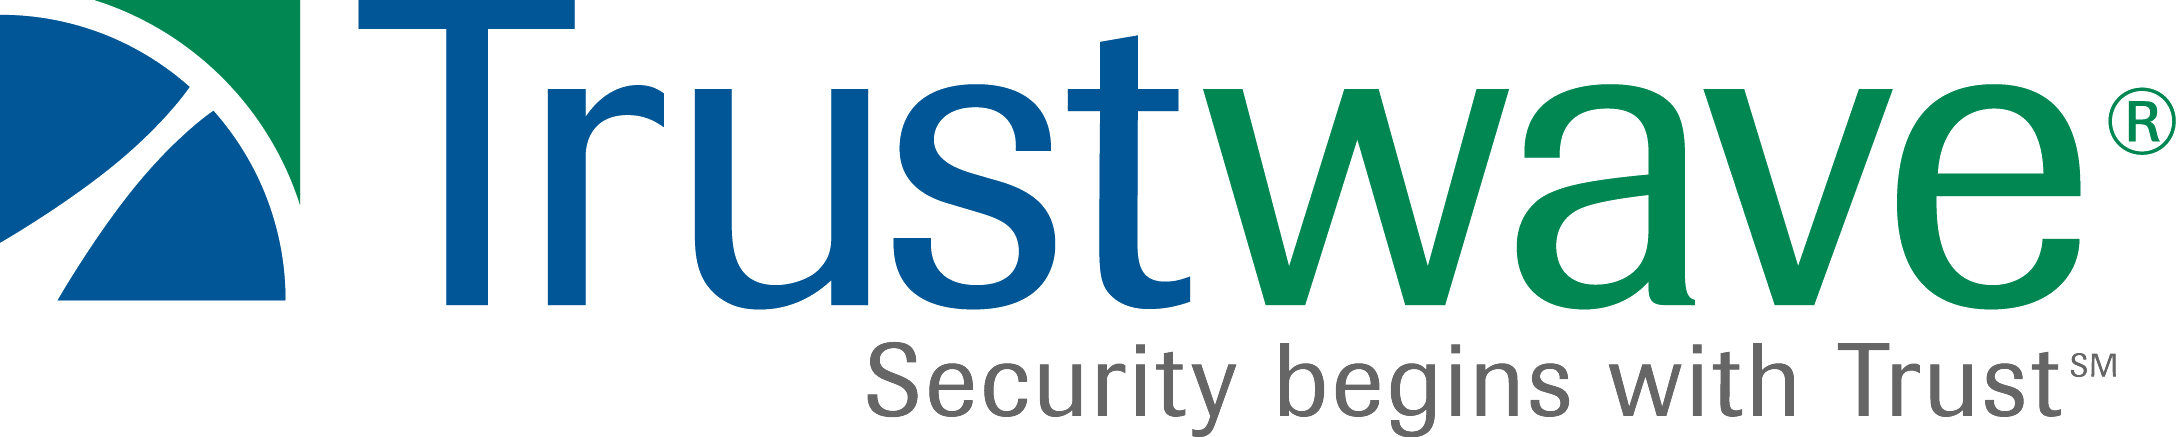 Trust Security Logo photo - 1